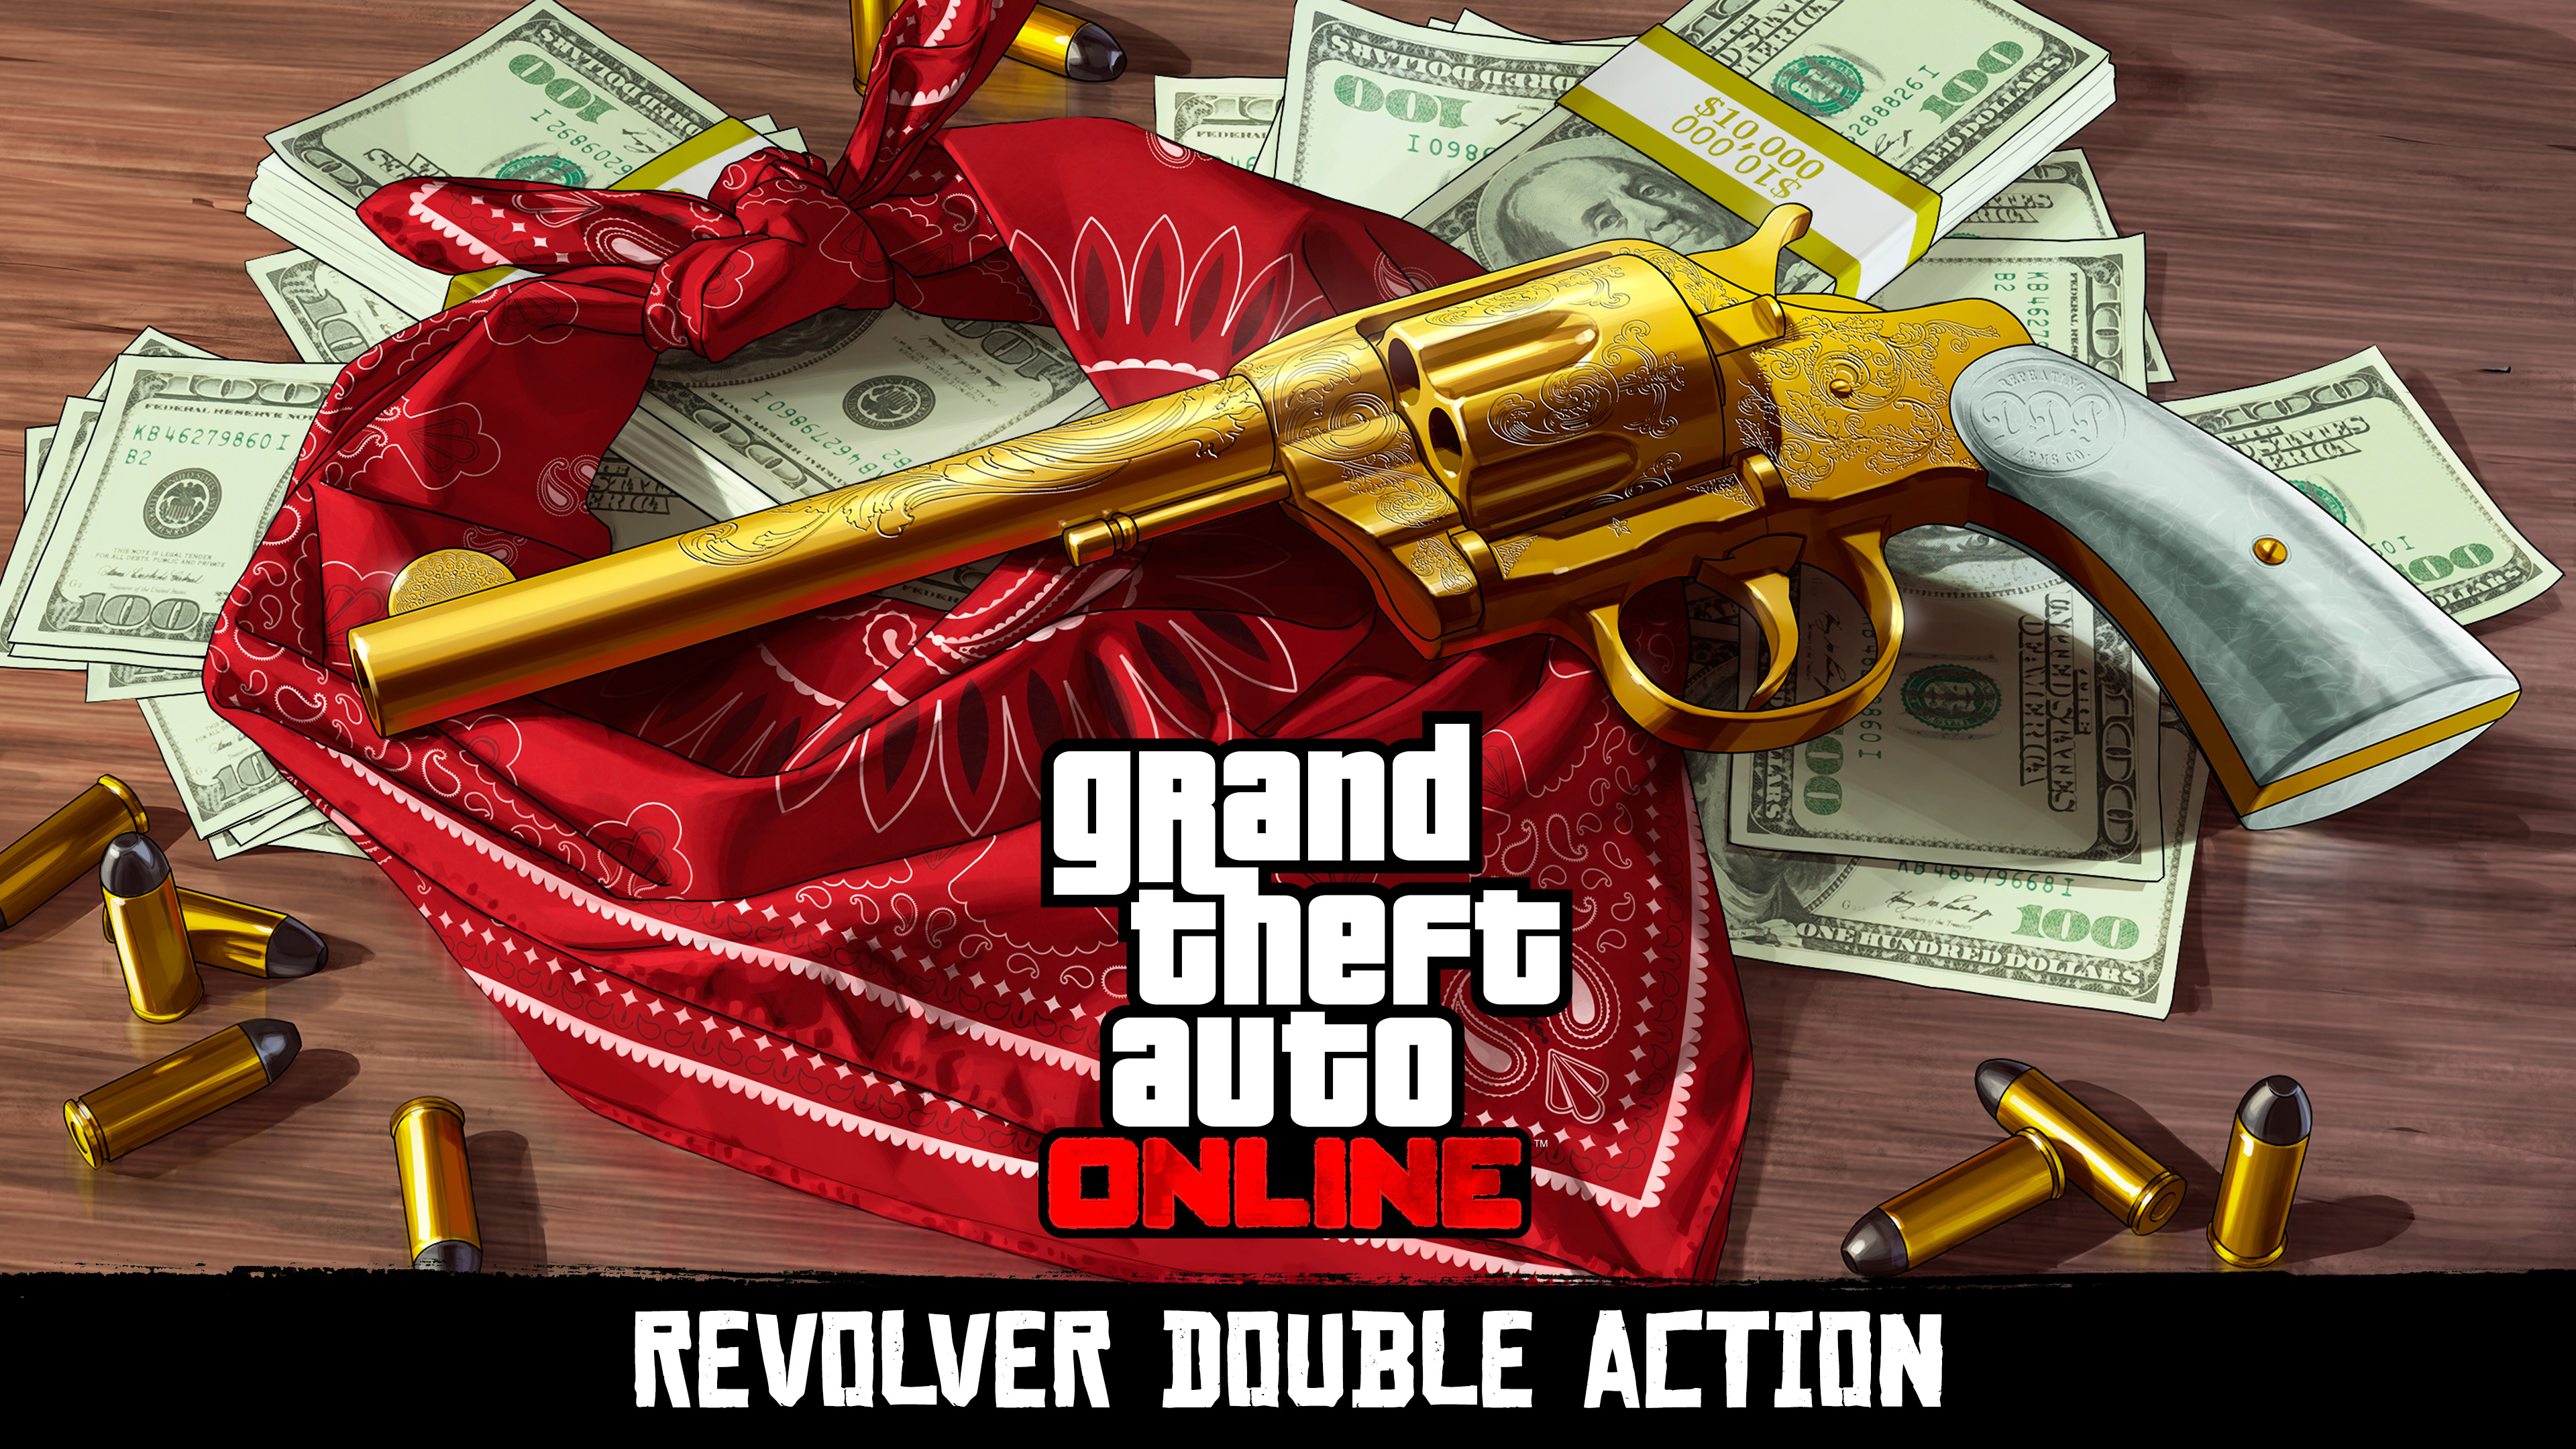 Revolver Double Action - GTA Online - Red Dead Redemption II